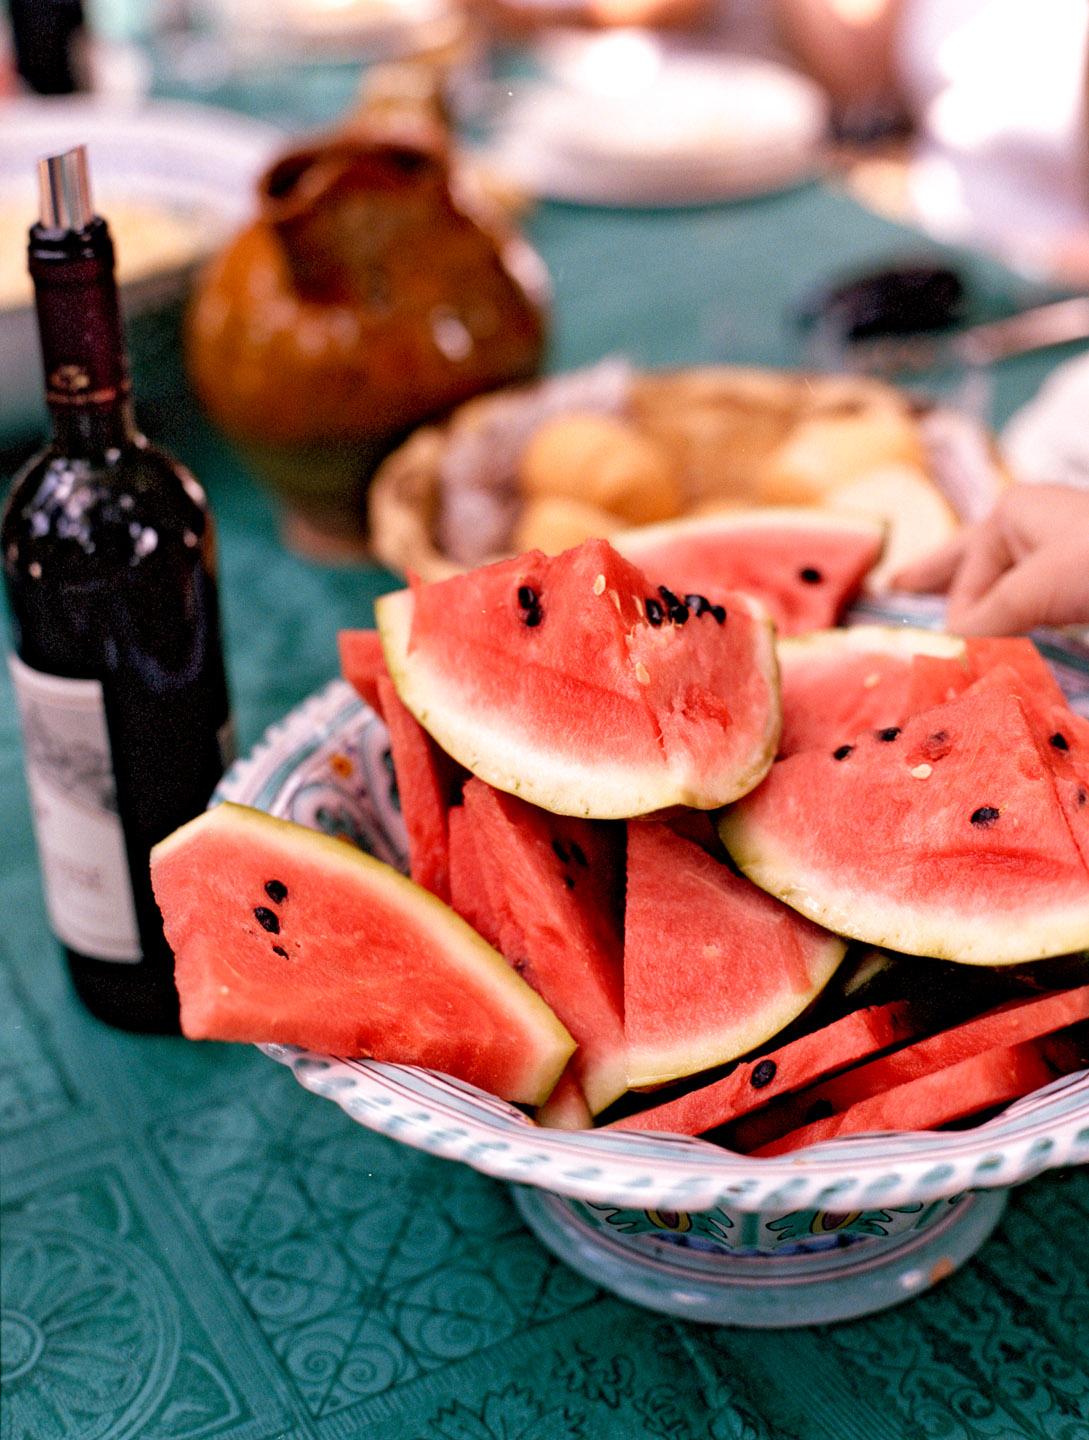 FrancescoLagnese_VM_Lunch_Watermelon_19